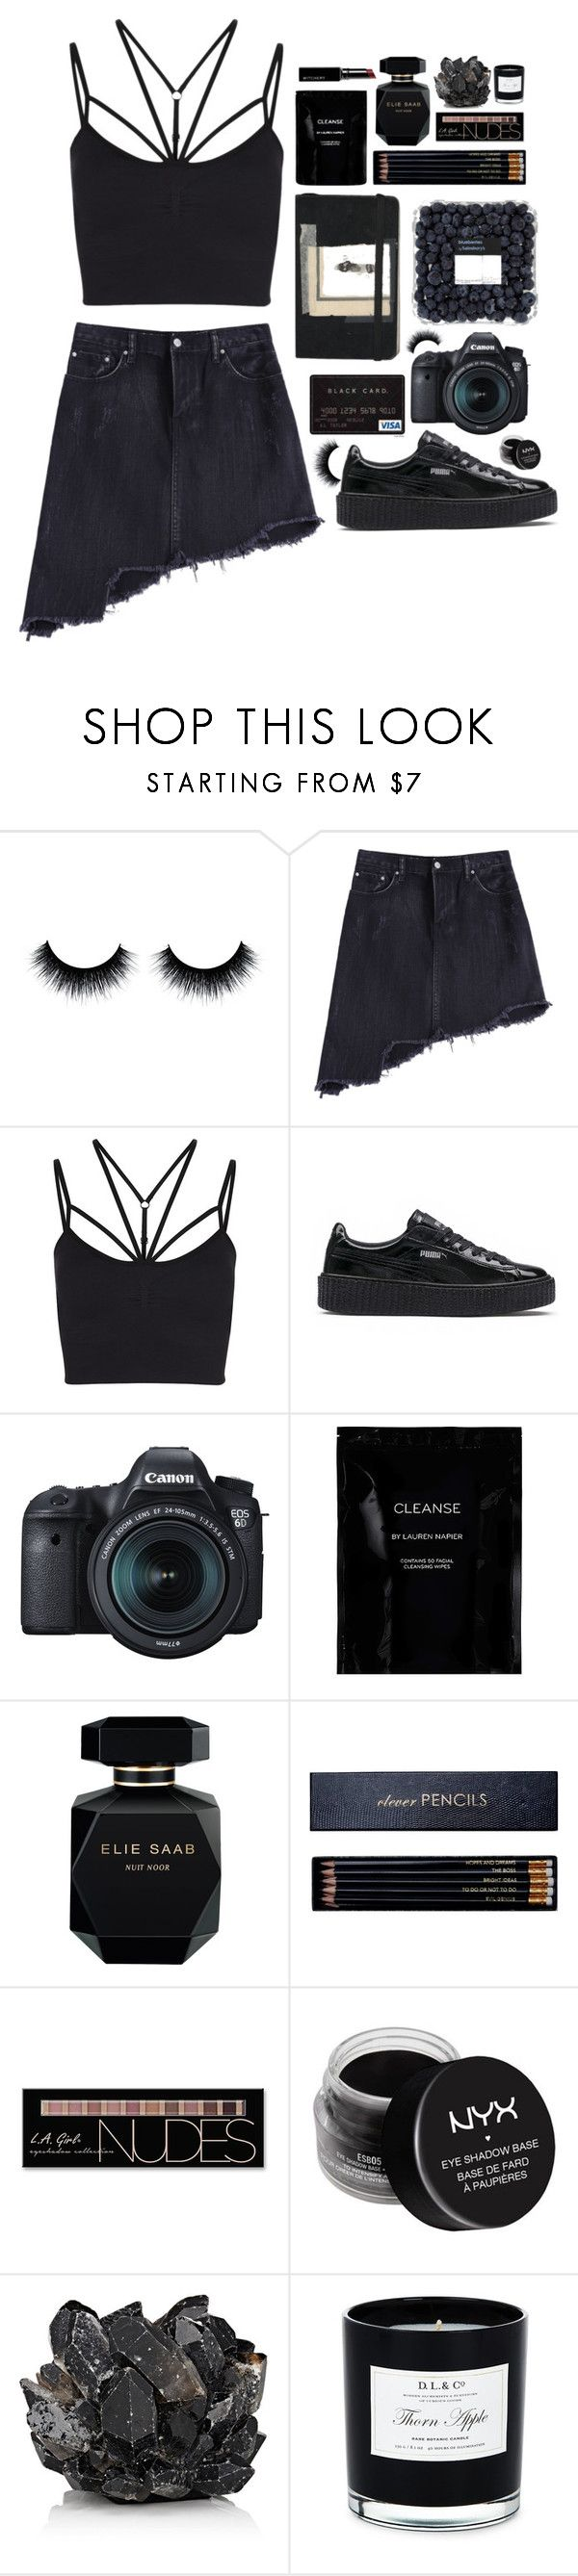 """Asymmetrical"" by sunshinelarry ❤ liked on Polyvore featuring Sweaty Betty, Puma, Moleskine, Eos, Cleanse by Lauren Napier, Elie Saab, Sloane Stationery, Charlotte Russe, NYX and McCoy Design"